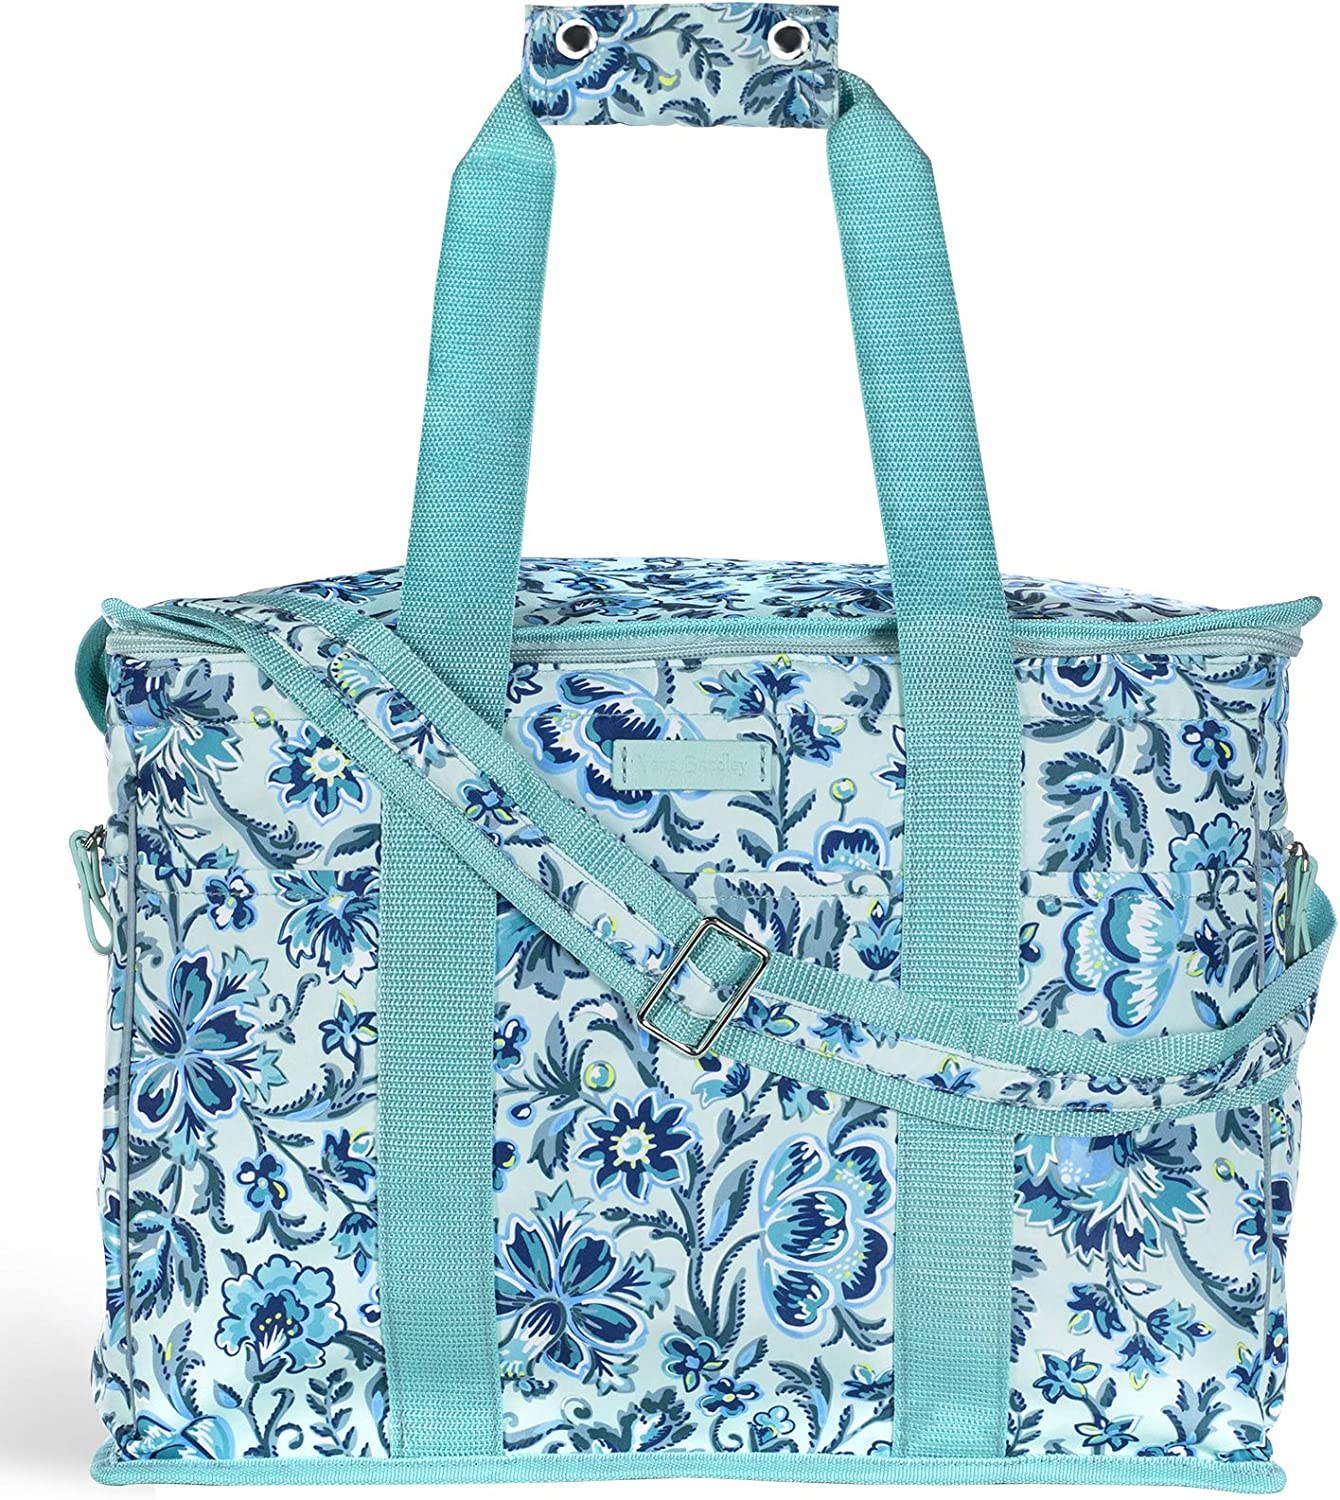 Vera Bradley Leak Resistant Insulated Cooler Bag Large Capacity, Blue Soft Sided Collapsible Cooler, Portable Beach Tote Bag with Handles and Adjustable Shoulder Strap, Cloud Vine